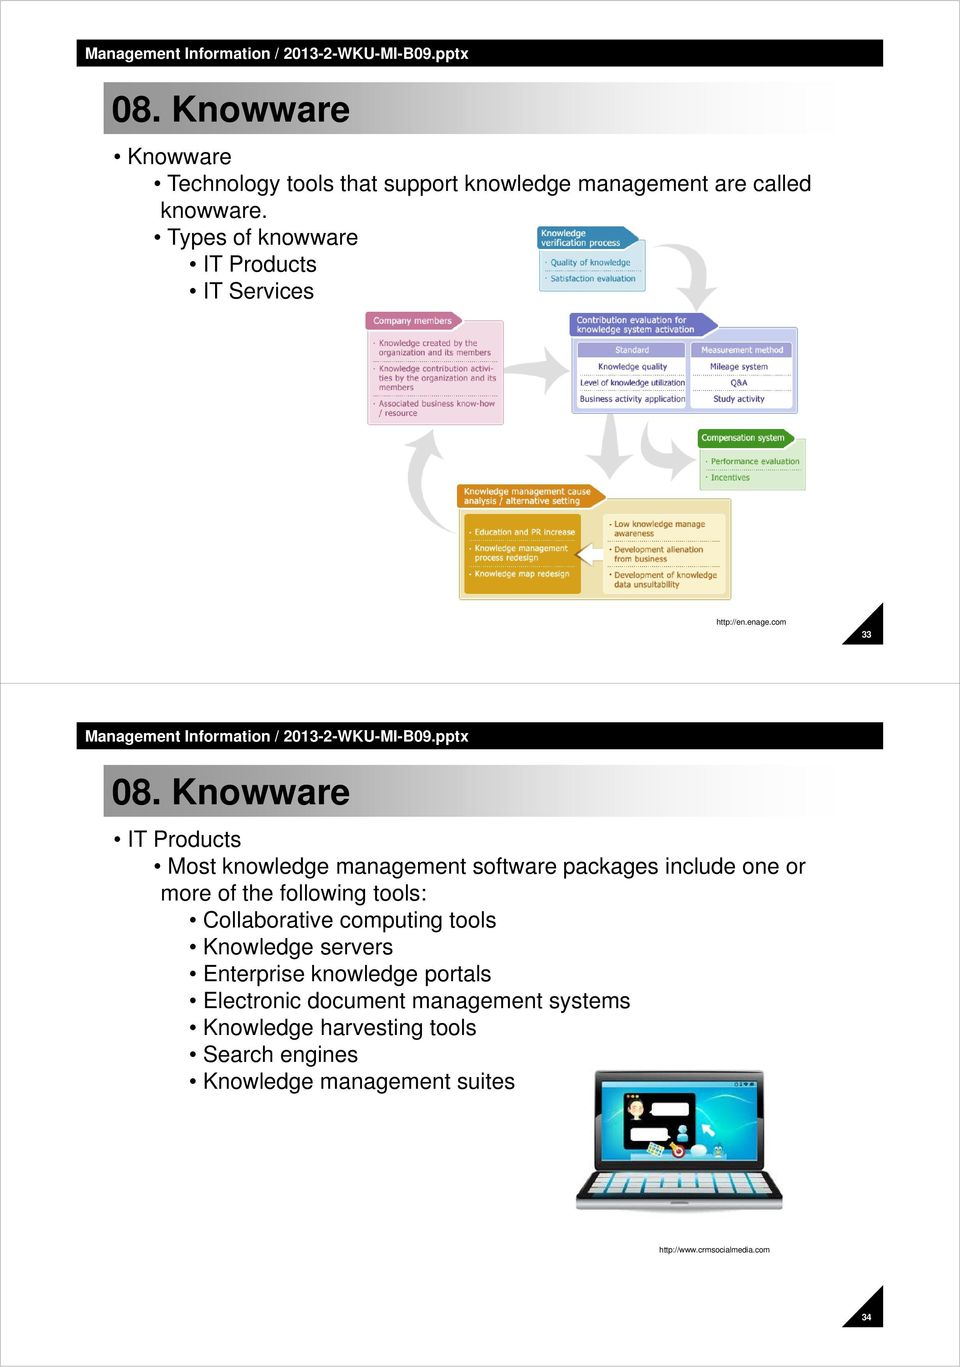 Knowware IT Products Most knowledge management software packages include one or more of the following tools: Collaborative